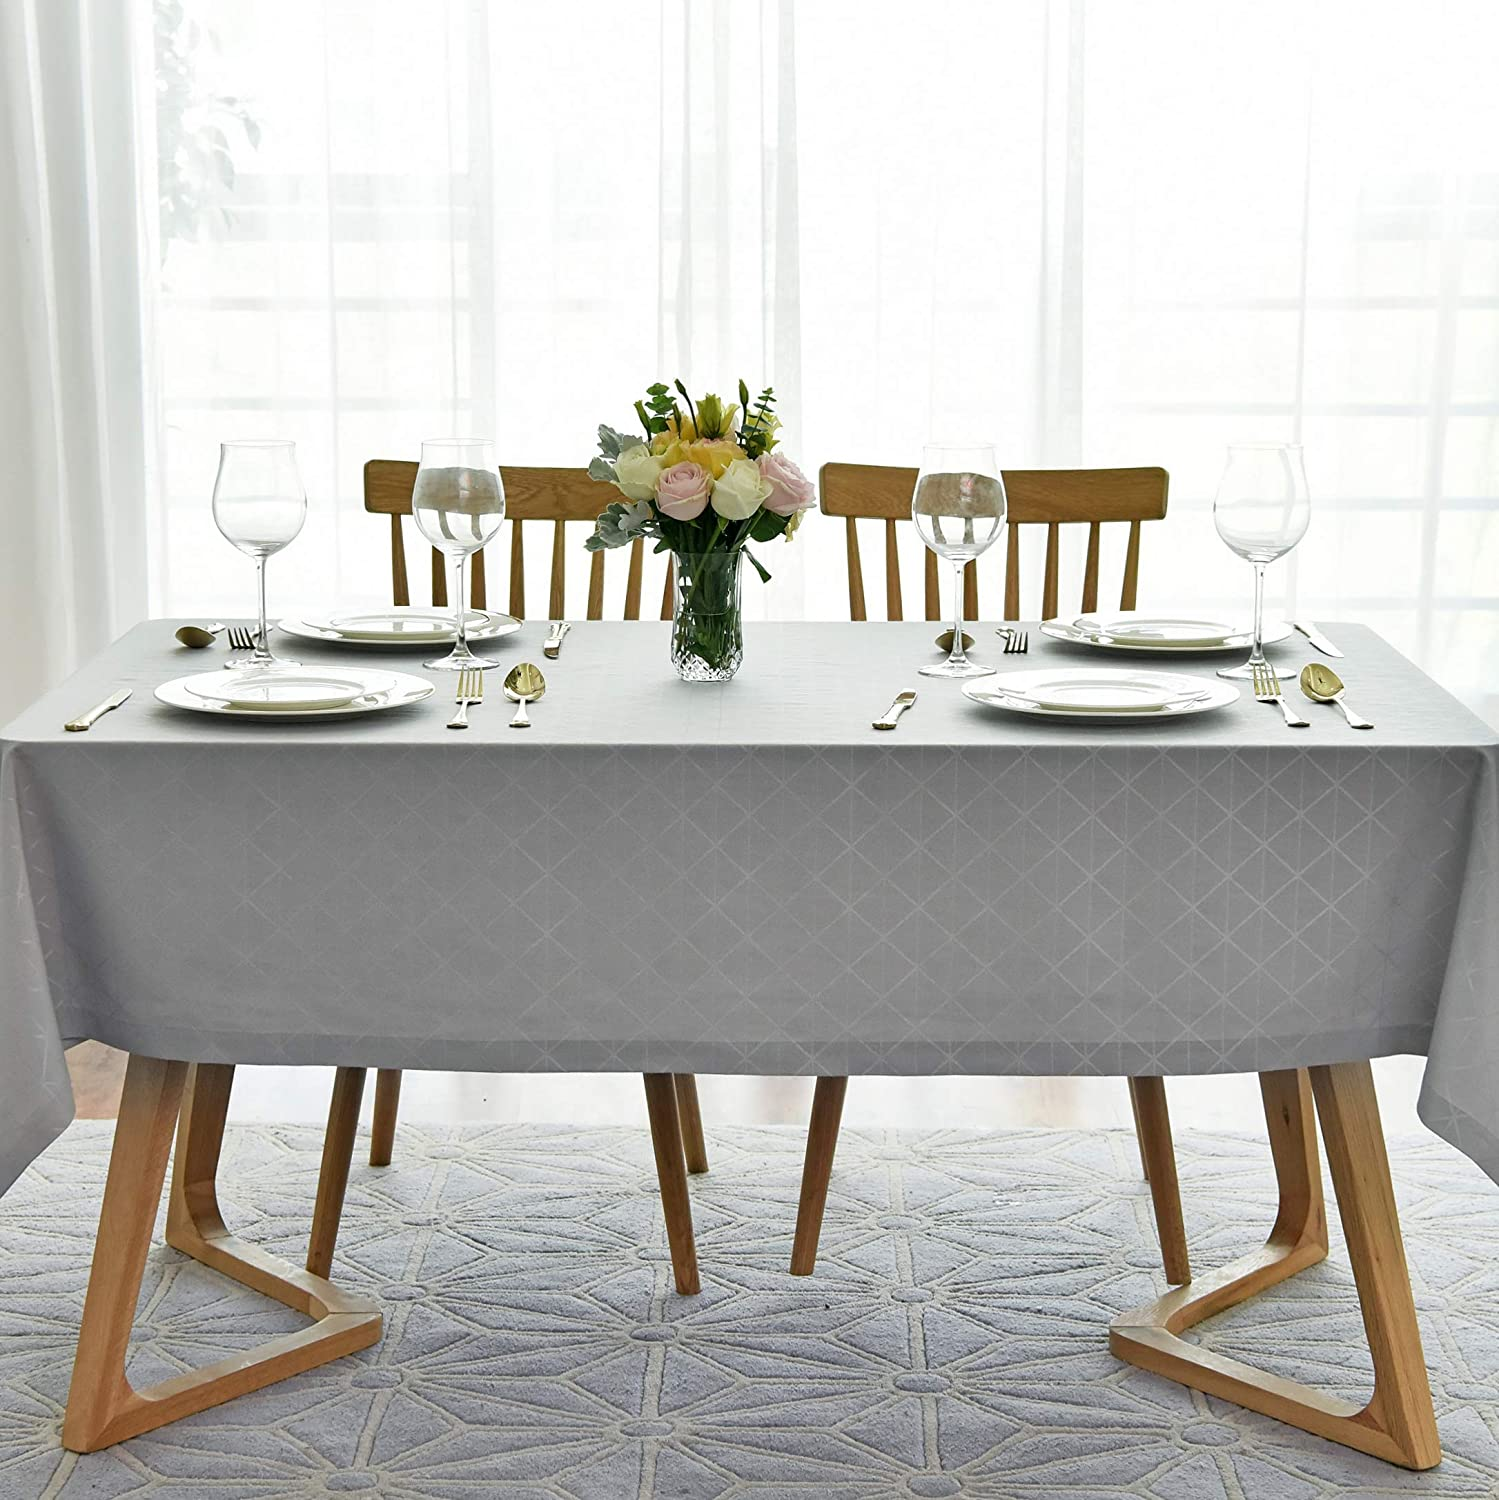 maxmill Jacquard Poly-Cotton Tablecloth Geometric Pattern SpillProof, Water Resistant Wide Hem Heavy Weight Soft Table Cloth for Kitchen Dining Tabletop Decoration Rectangle, Light Grey, 58x84 Inch